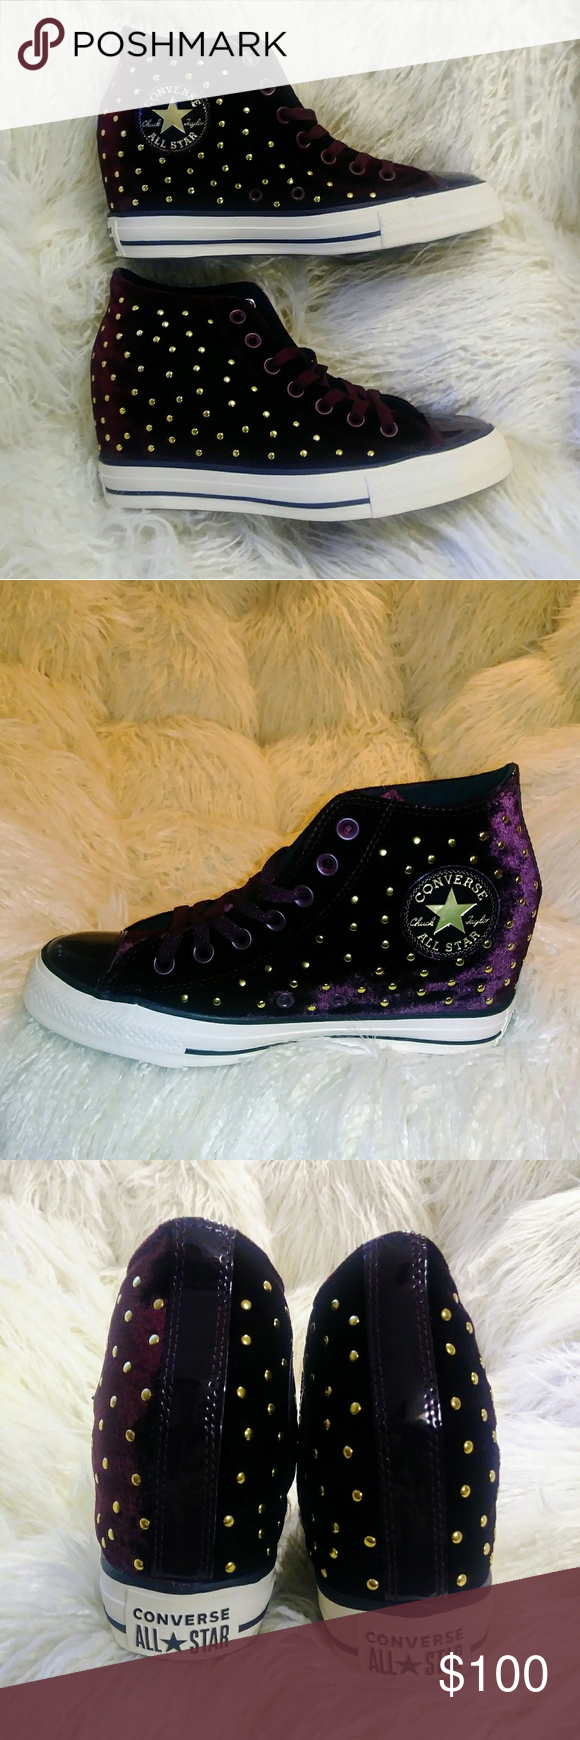 68817a4b127b NWT Converse Chuck Taylor Lux Wedges Bootie Velvet - So sexy!!!! -